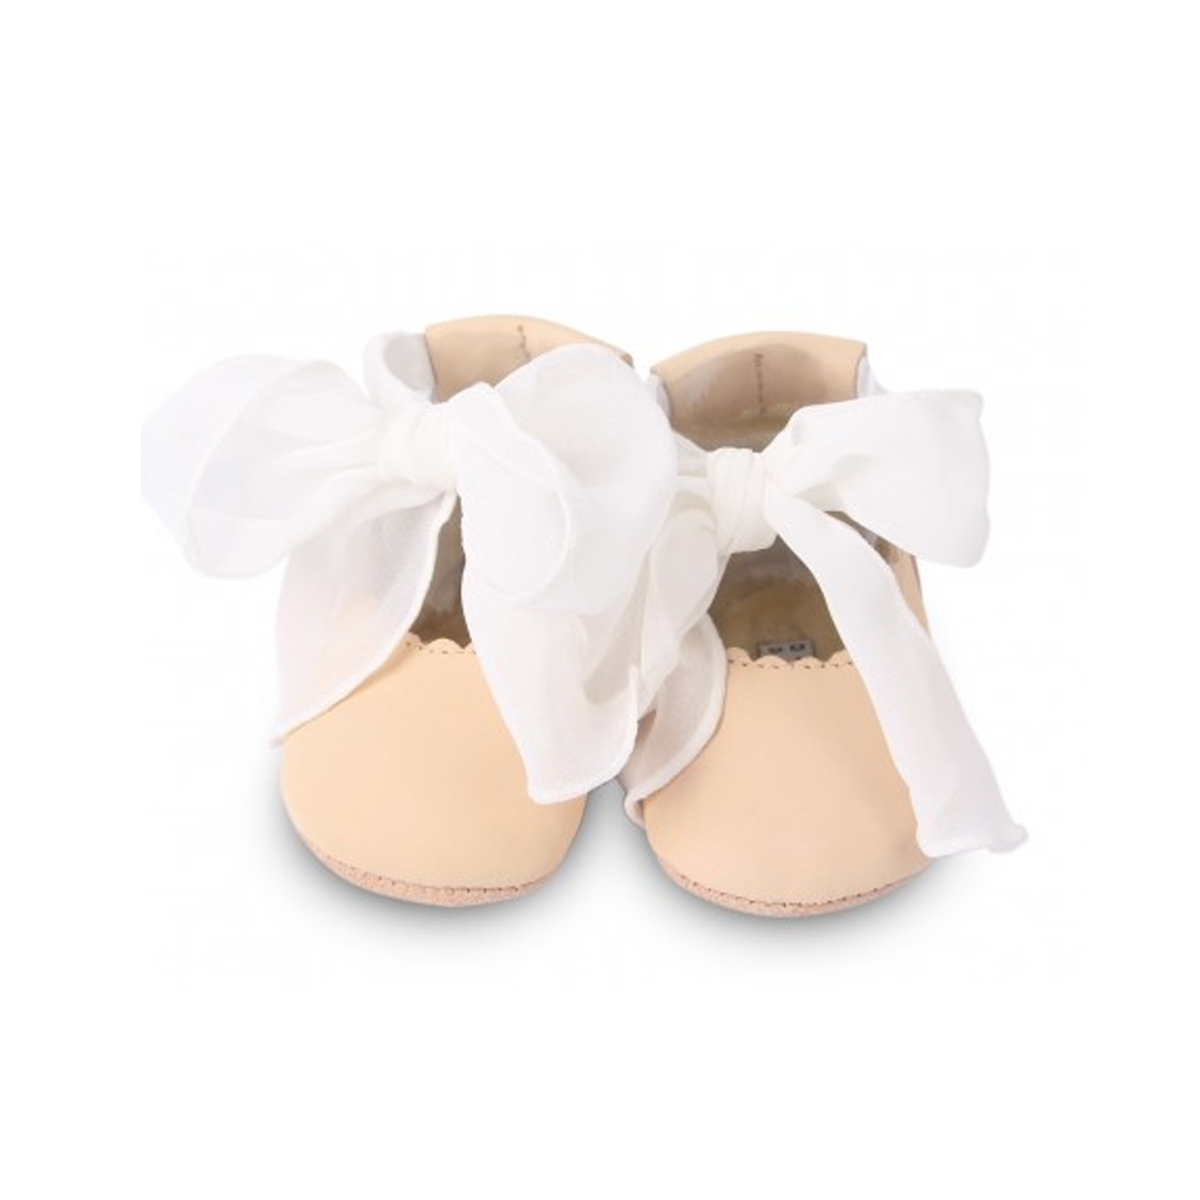 Donsje Amsterdam Lieve Leather Baby Shoes in Powder Nubuck